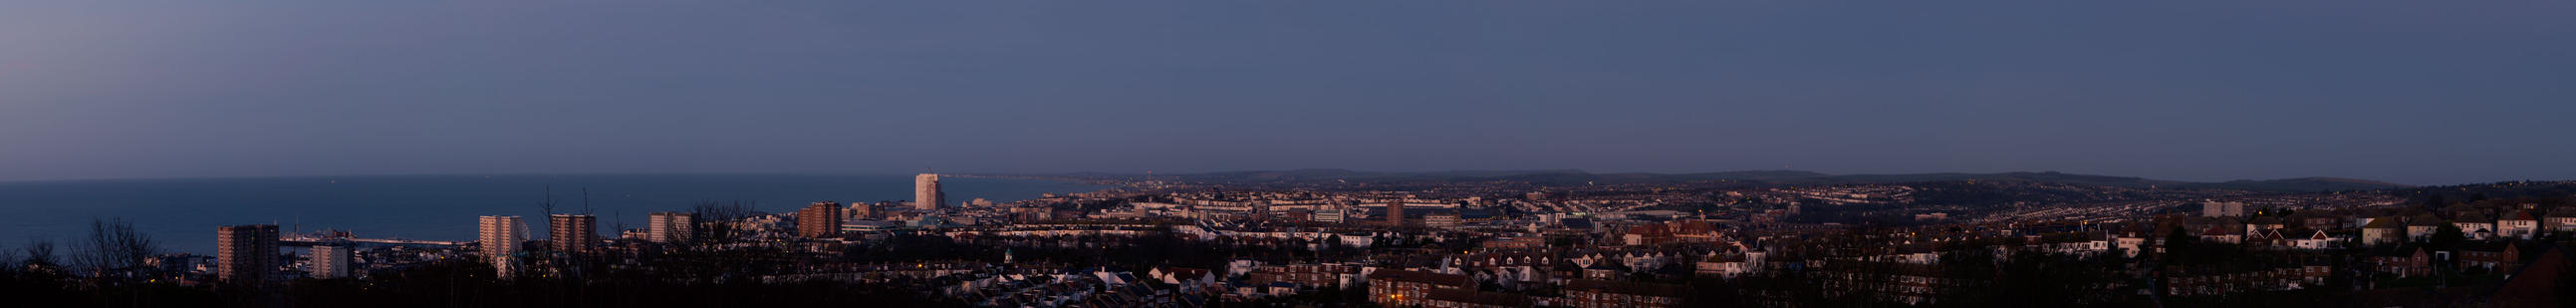 Brighton AM panorama by flatproduct